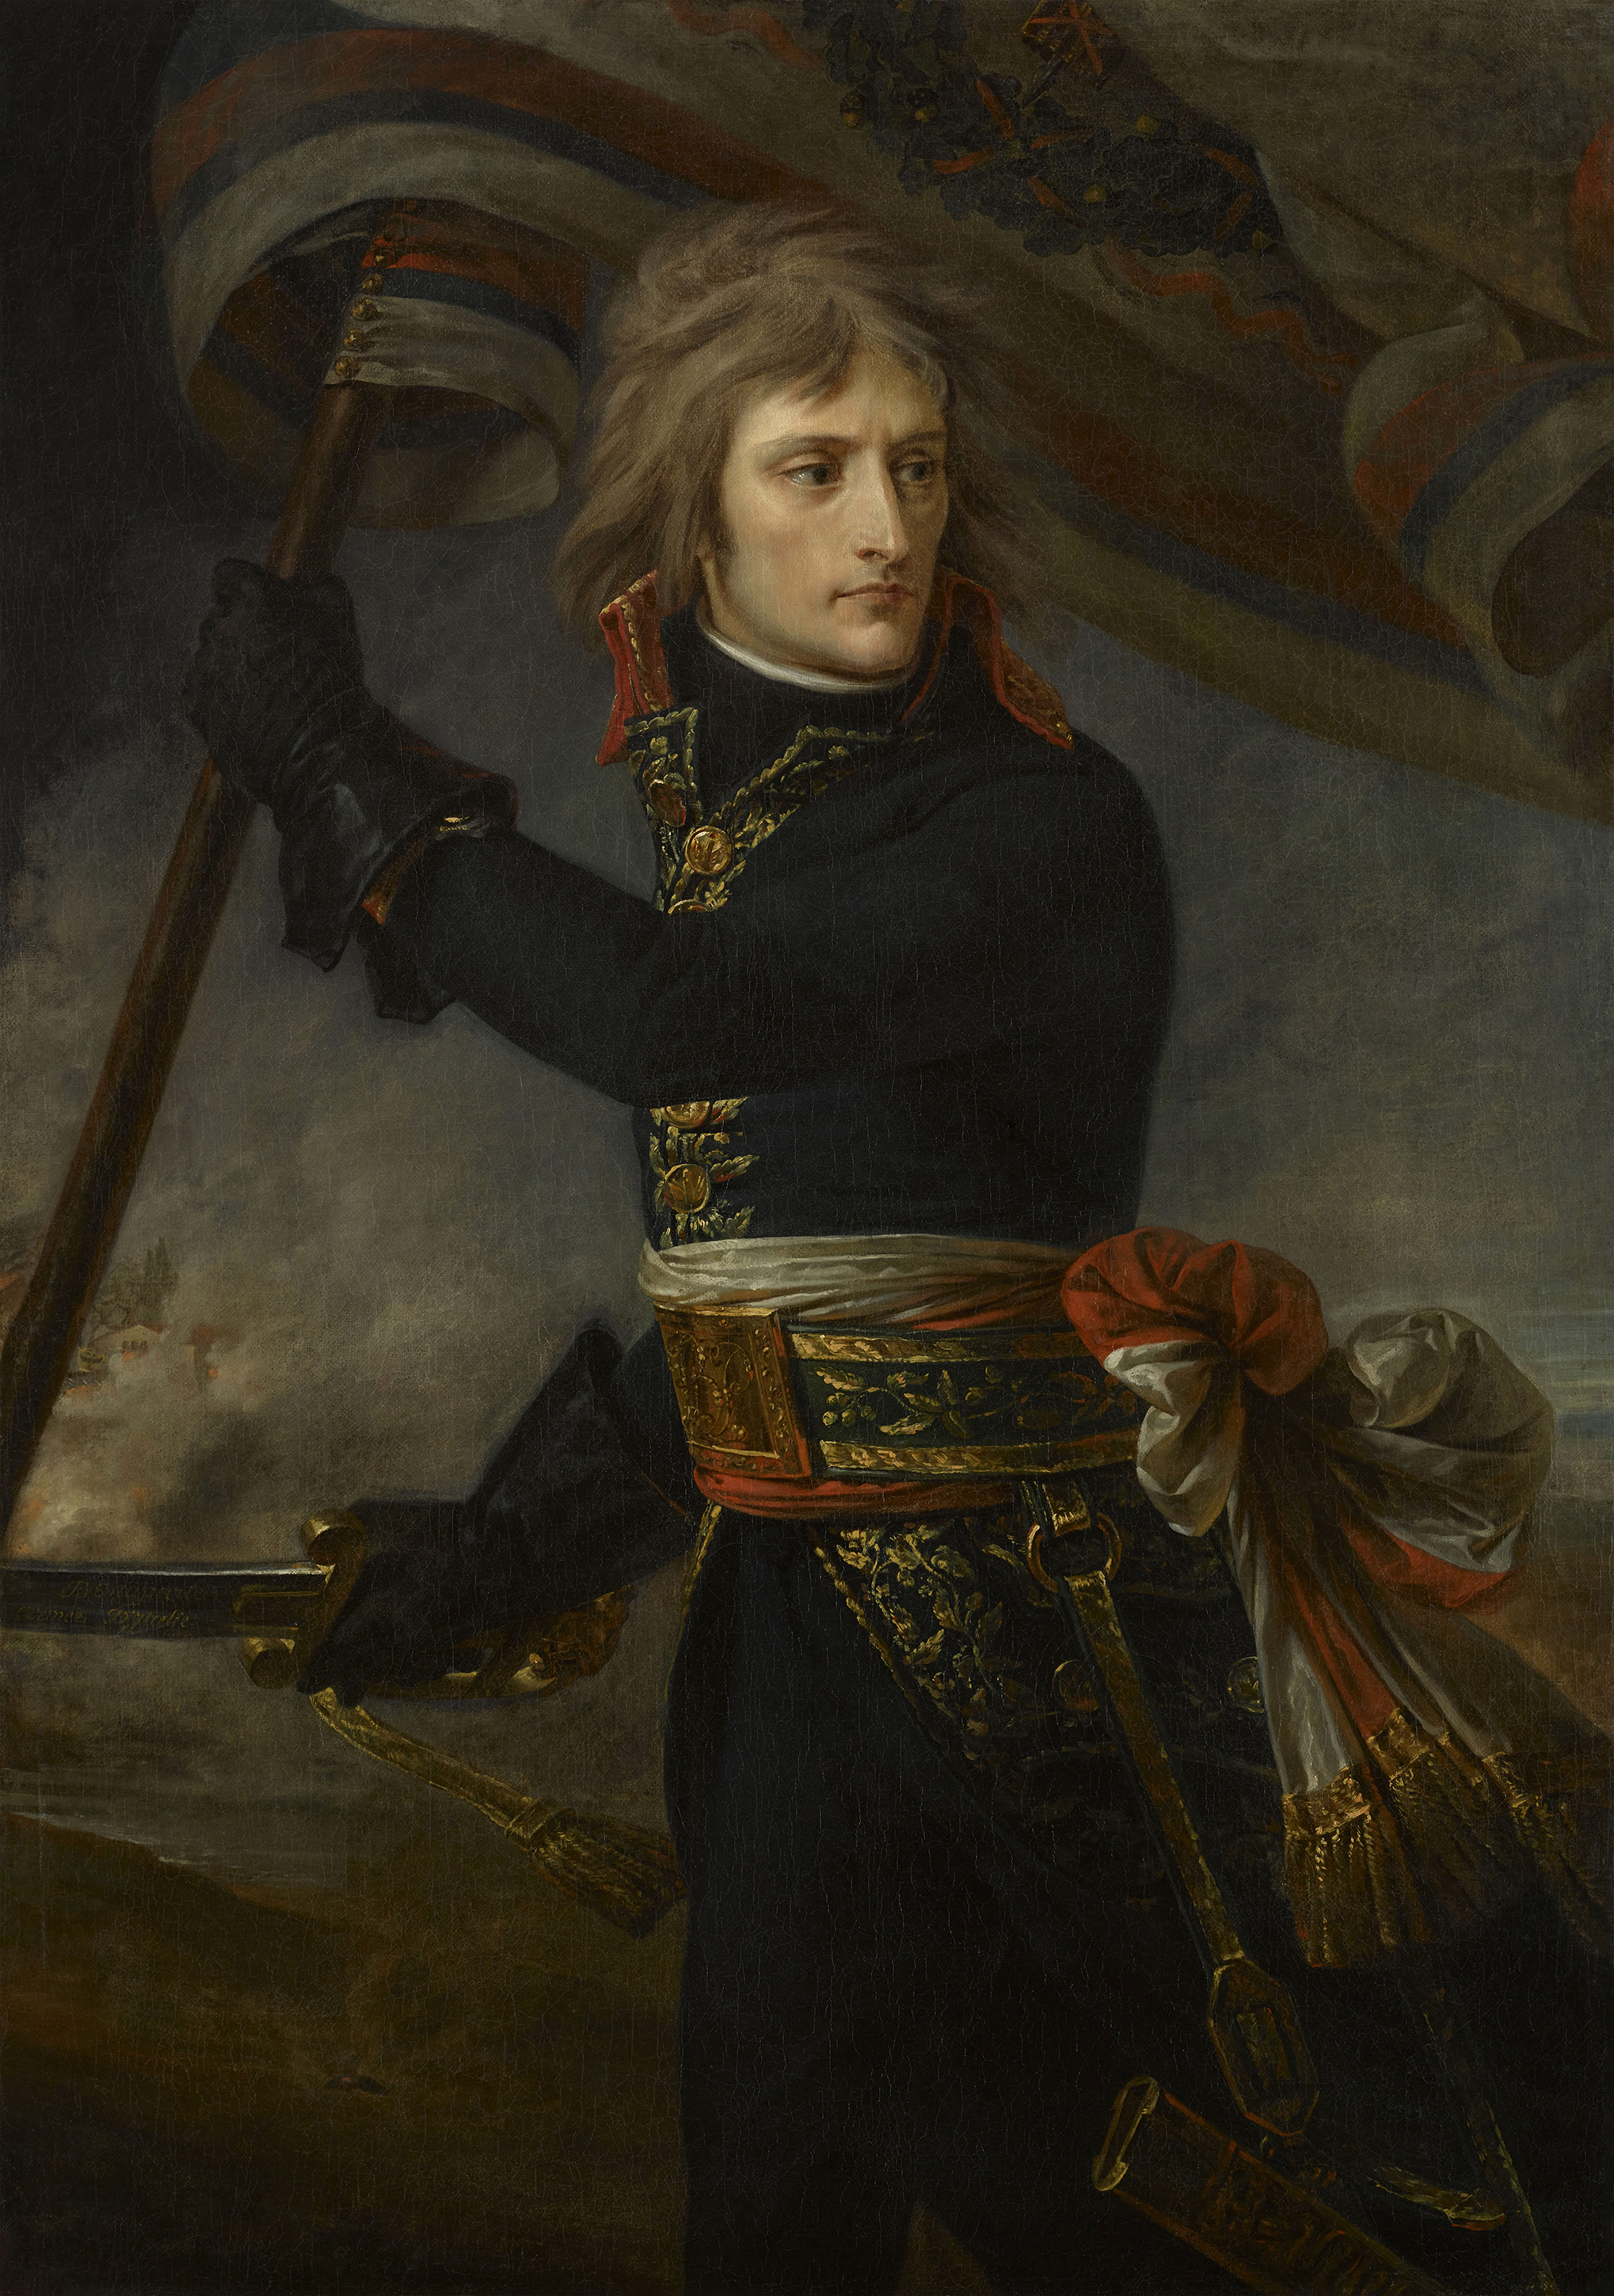 Portrait of Napoléon Bonaparte (1769-1821), Divisional general (1795), First Consul of the French Republic (1799-1804), Emperor of the French (1804-1814; 1815), King of Italy (1805-1814), Mediator of the Swiss Confederation (1803-1813), Protector of the Confederation of the Rhine (1806-1813), Sovereign of the Island of Elba (1814-1815), 1796 | Portraits of Kings